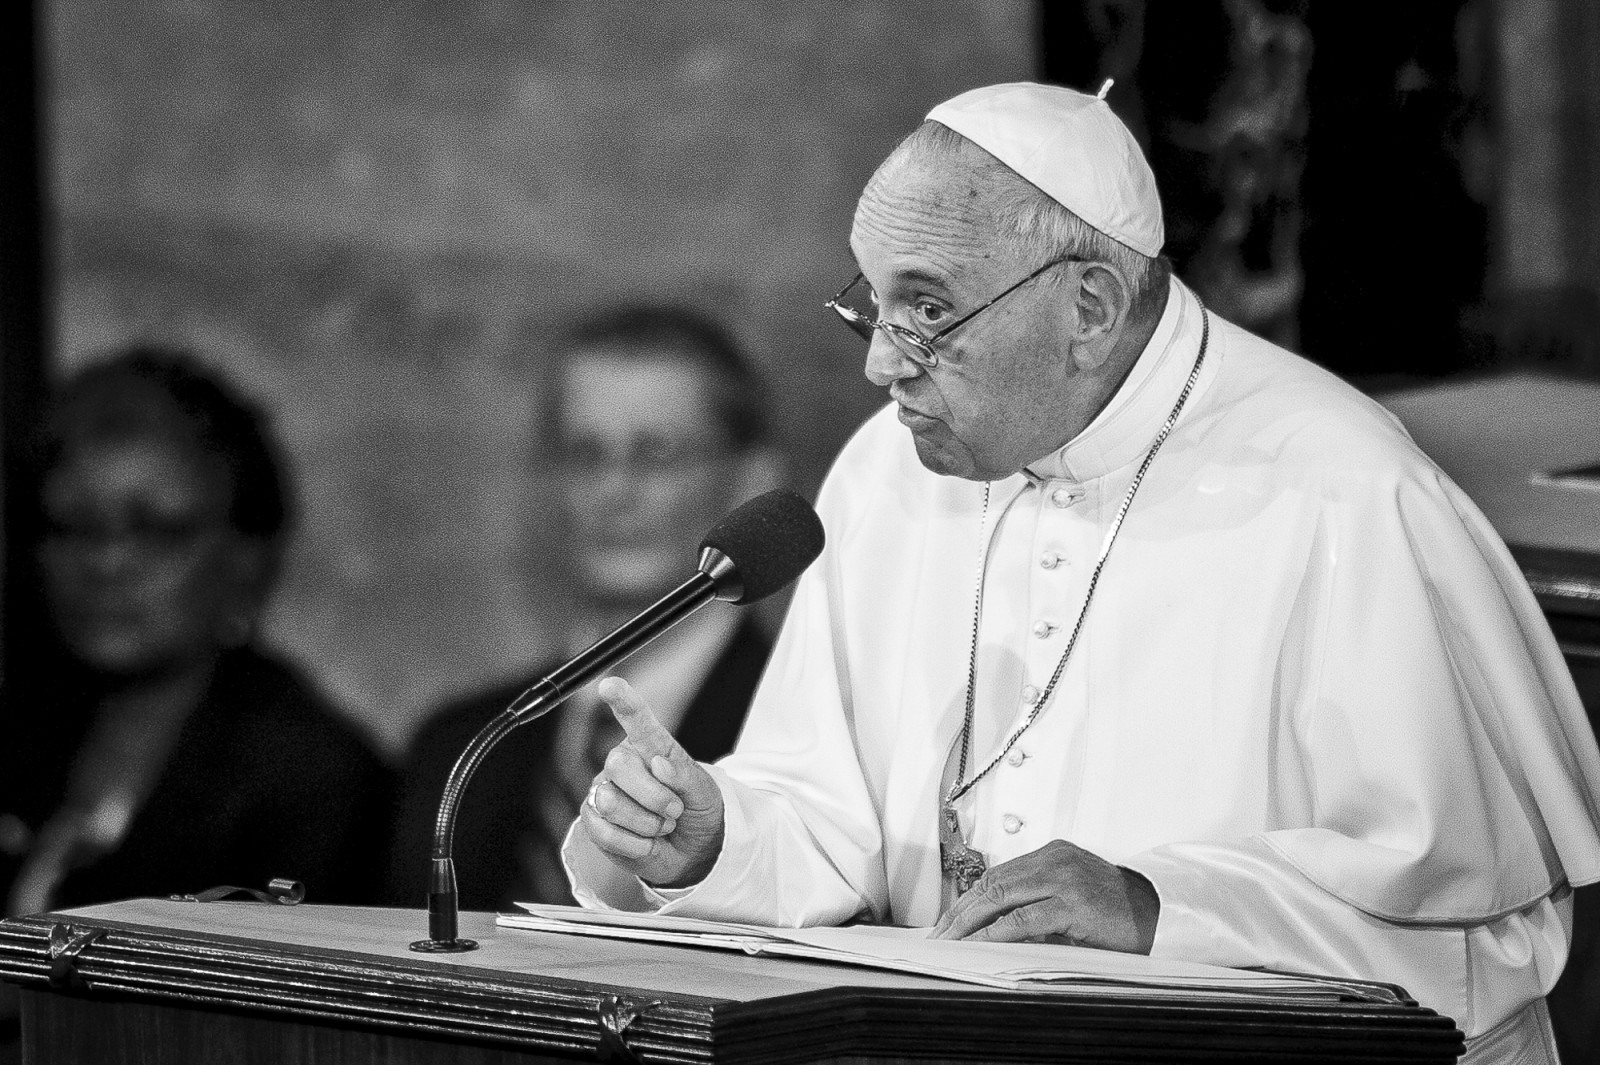 Pope Francis speaks to a joint meeting of Congress at the U.S. Capitol in Washington, District of Columbia, U.S., on Thursday, Sept. 24, 2015. Credit: Pete Marovich/Bloomberg